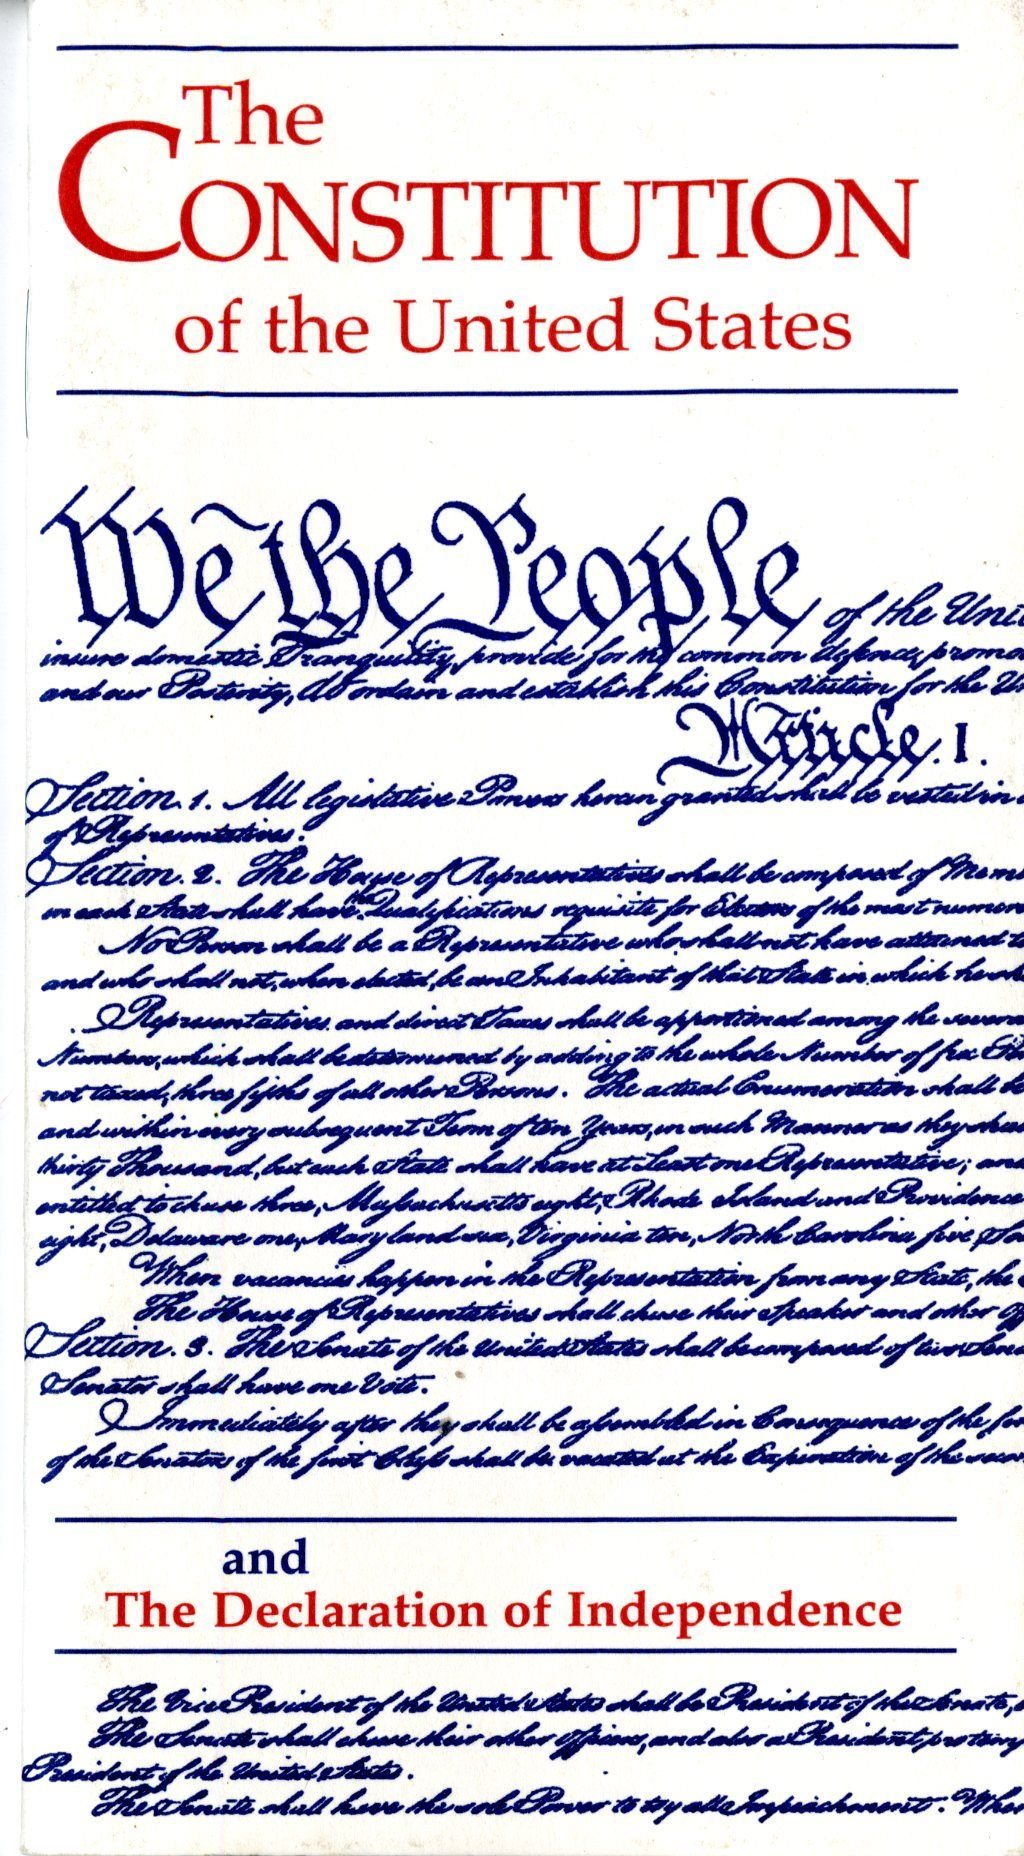 It's an election year, there's no better time for your family to read and discuss the Constitution of the United States and the Declaration of Independence. These two documents represen…